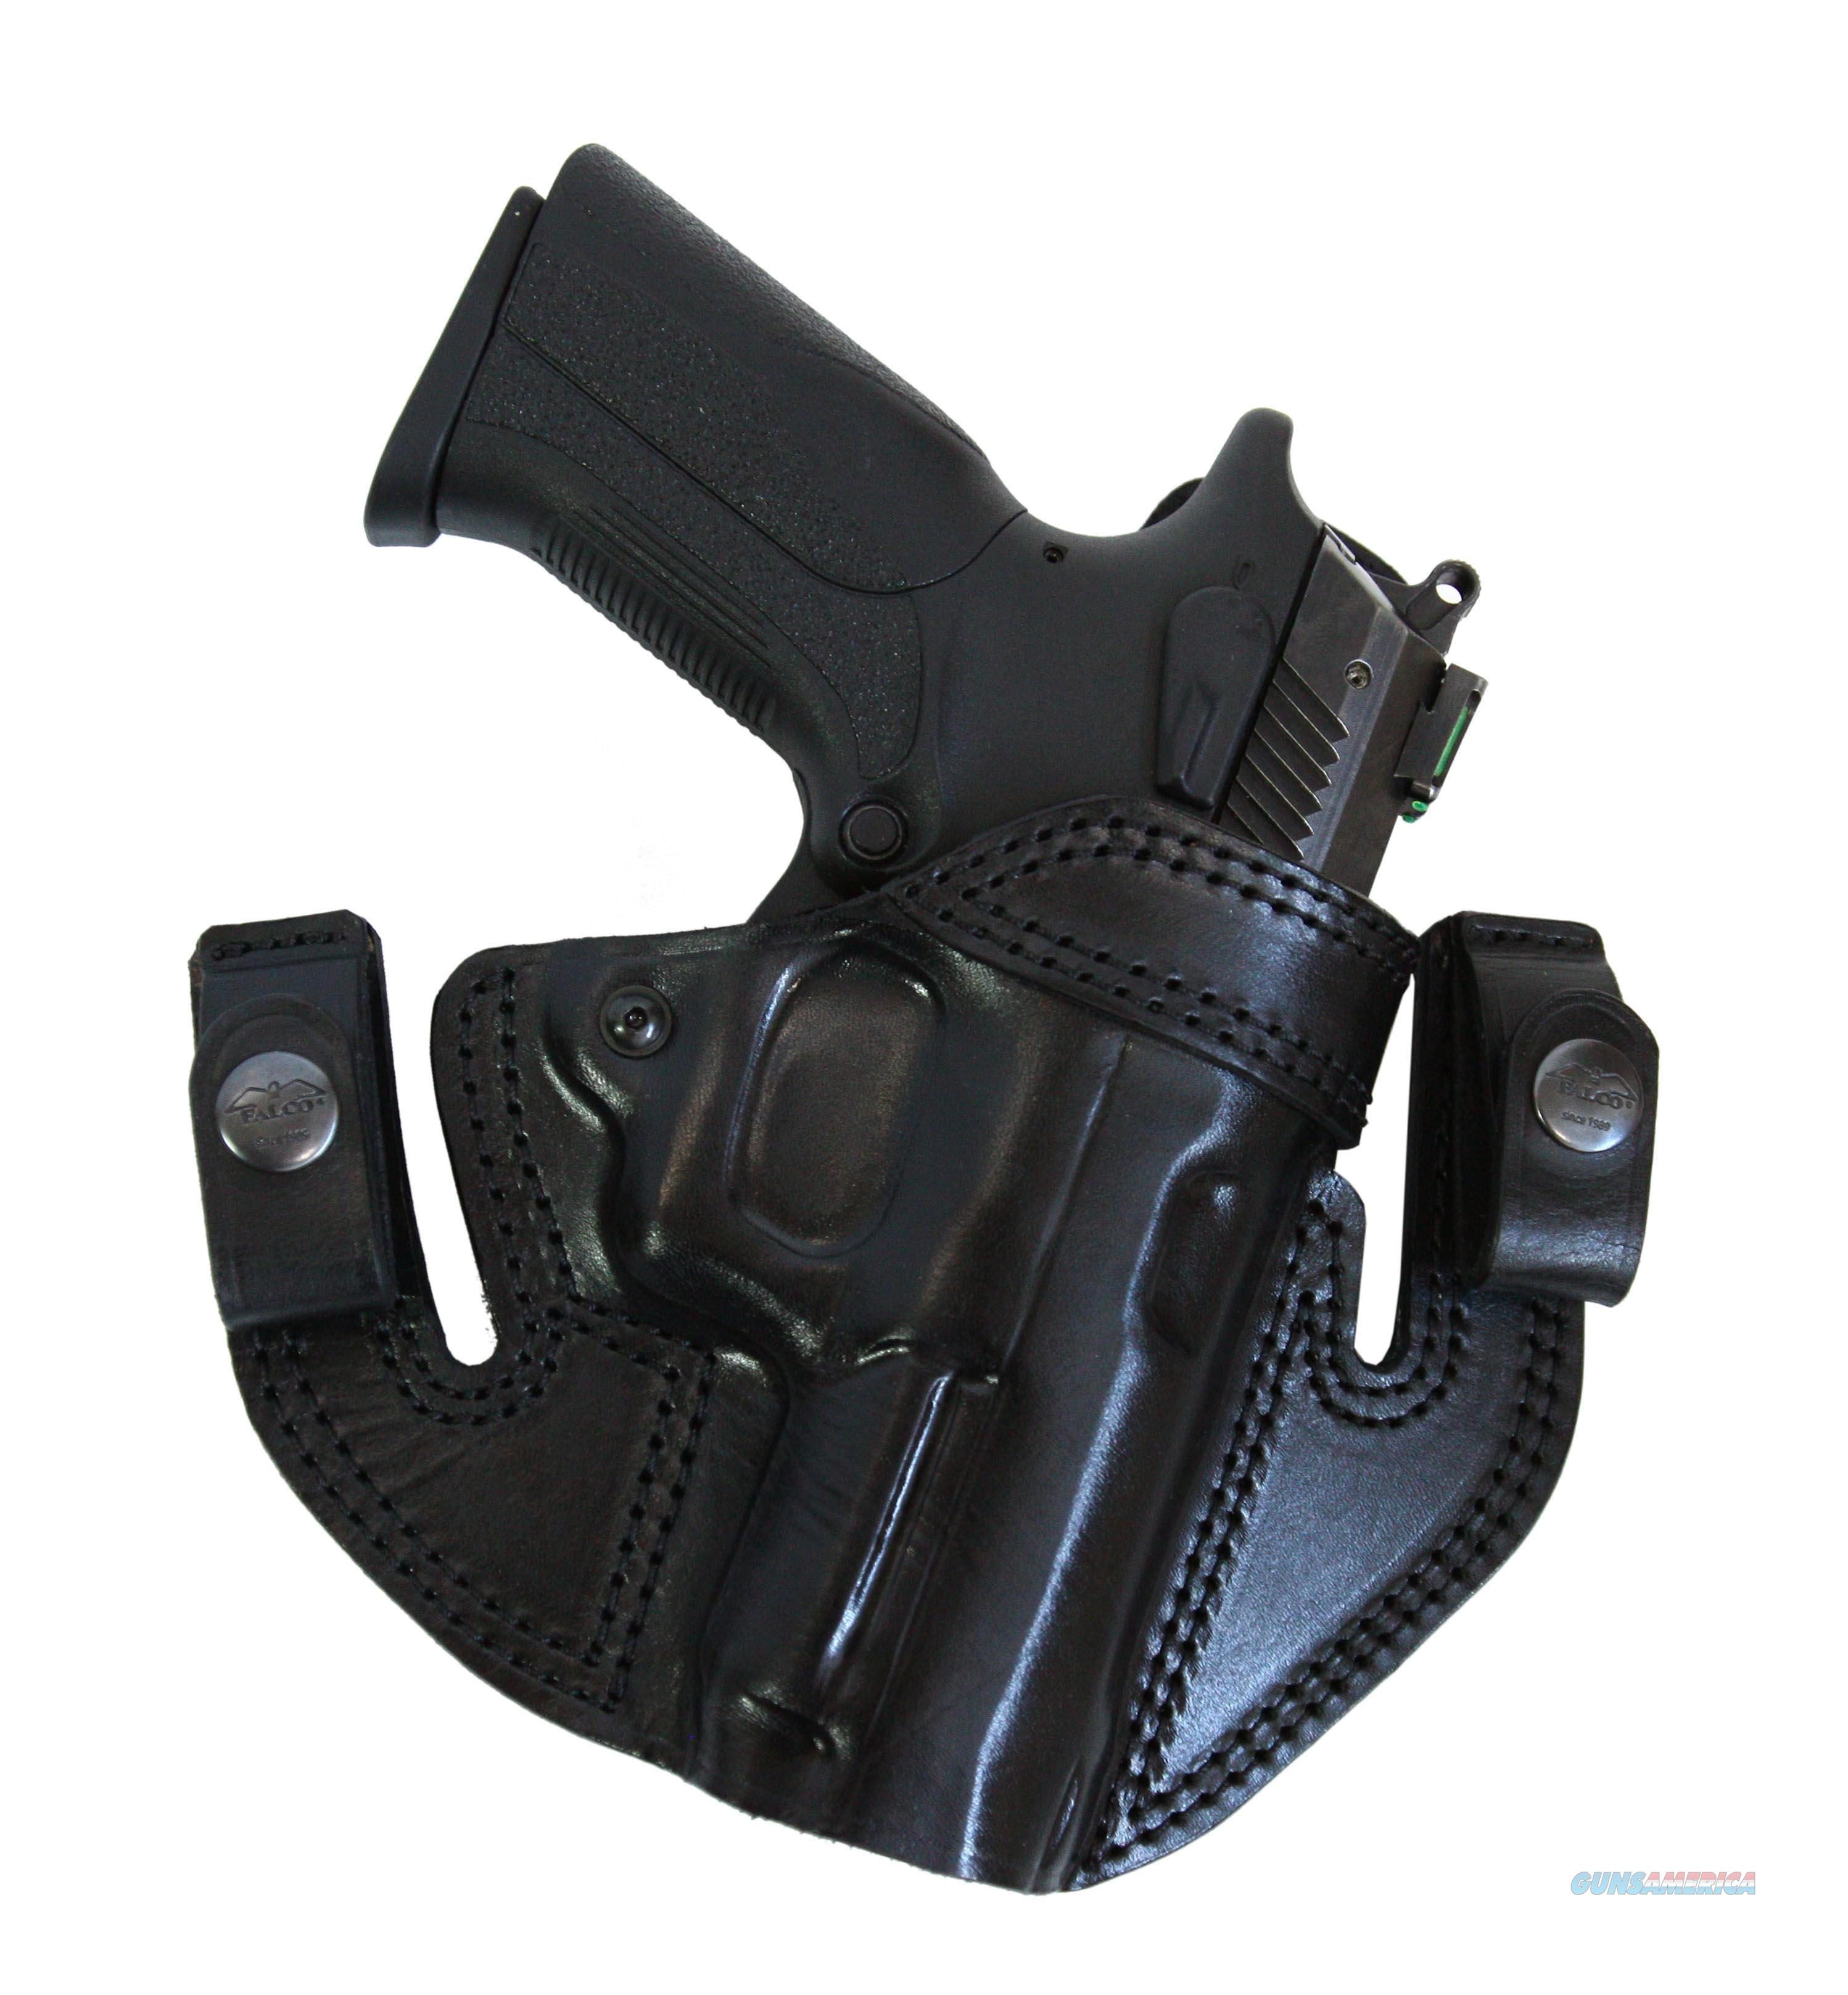 IWB / OWB Leather Gun Holster  Sig Sauer P226  Non-Guns > Holsters and Gunleather > Concealed Carry